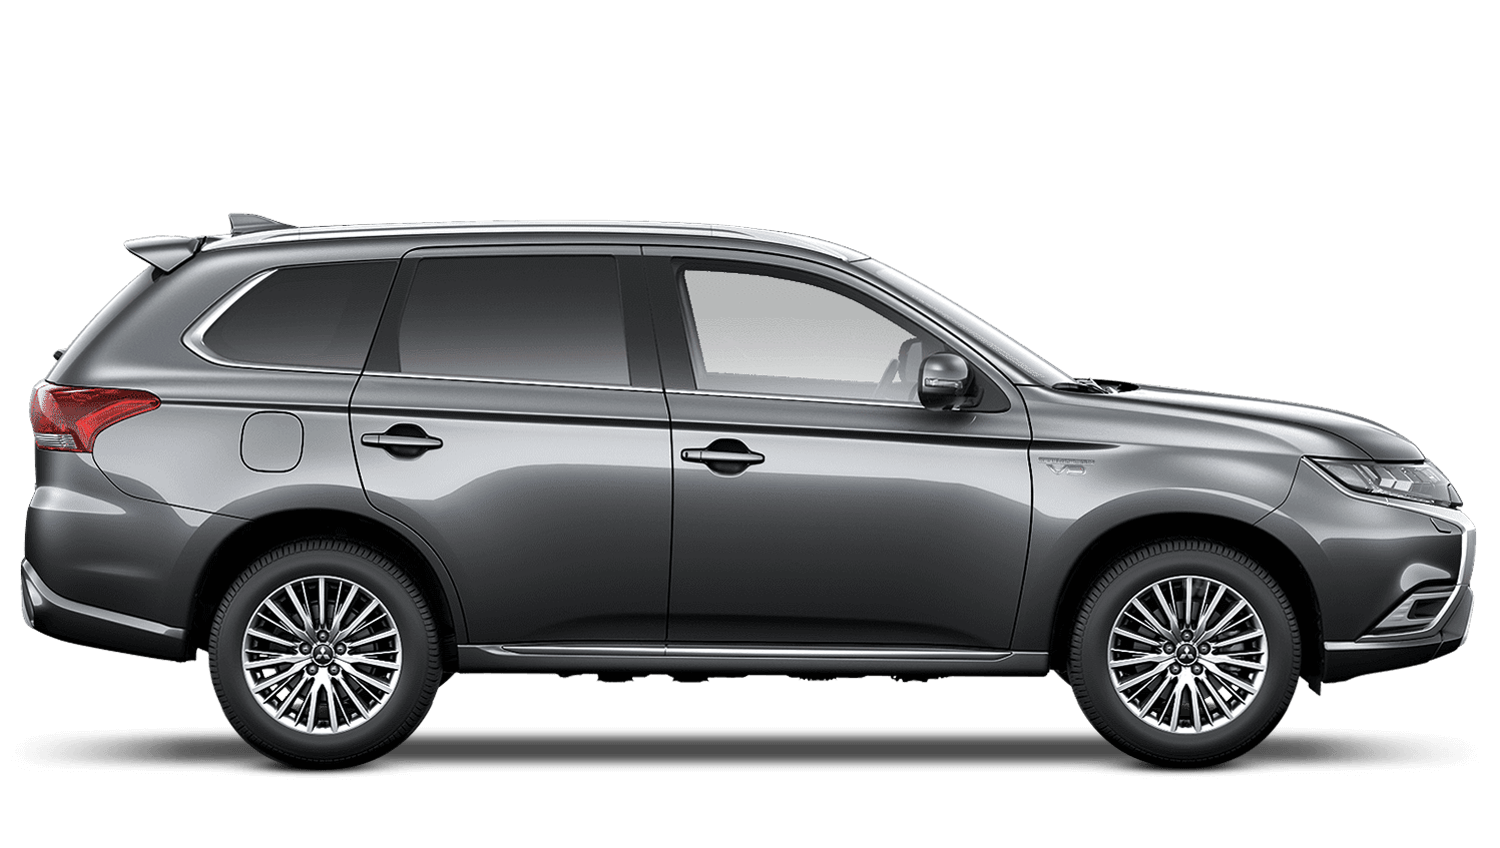 Atlantic Grey Mitsubishi Outlander PHEV